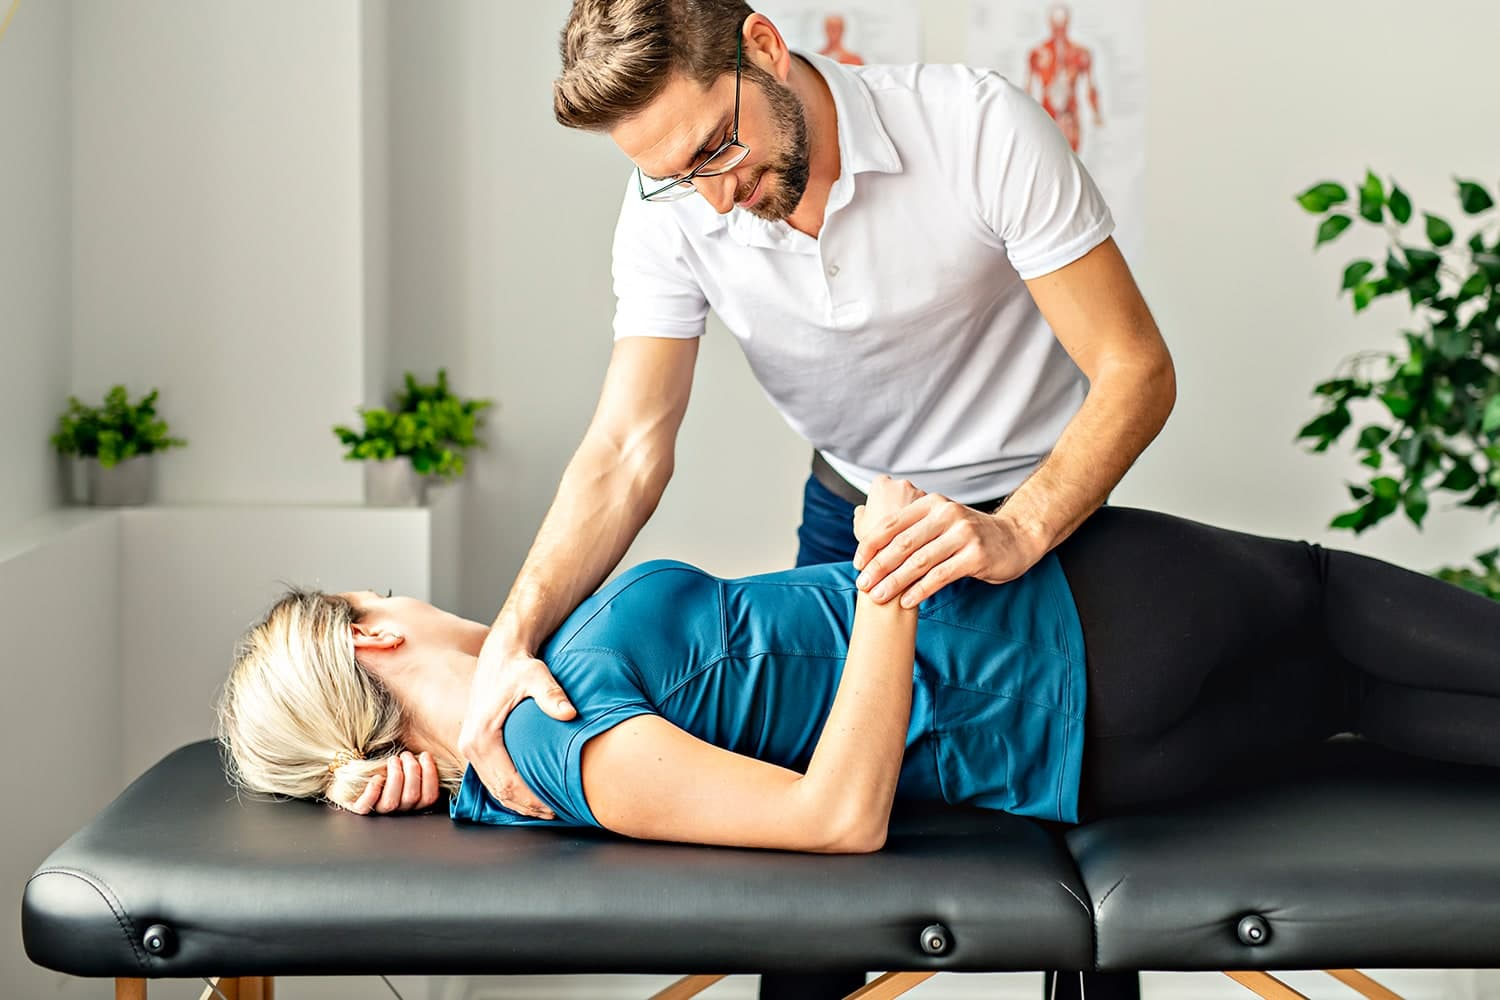 Chiropractor working on patient